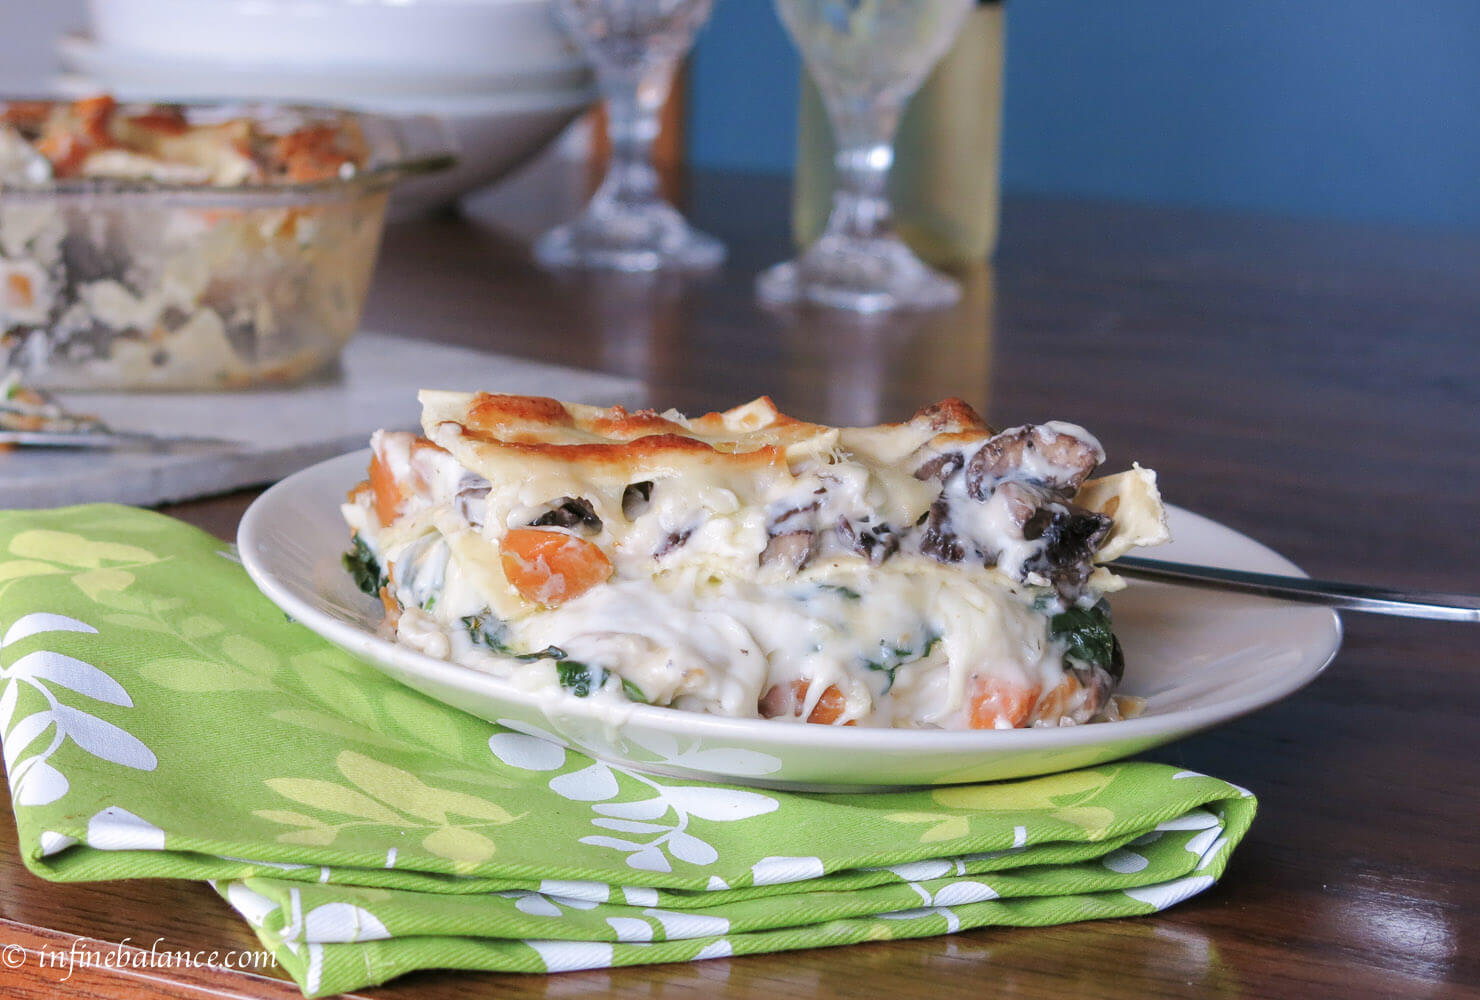 Vegetarian Lasagna with Sweet Potatoes and Portabella Mushrooms